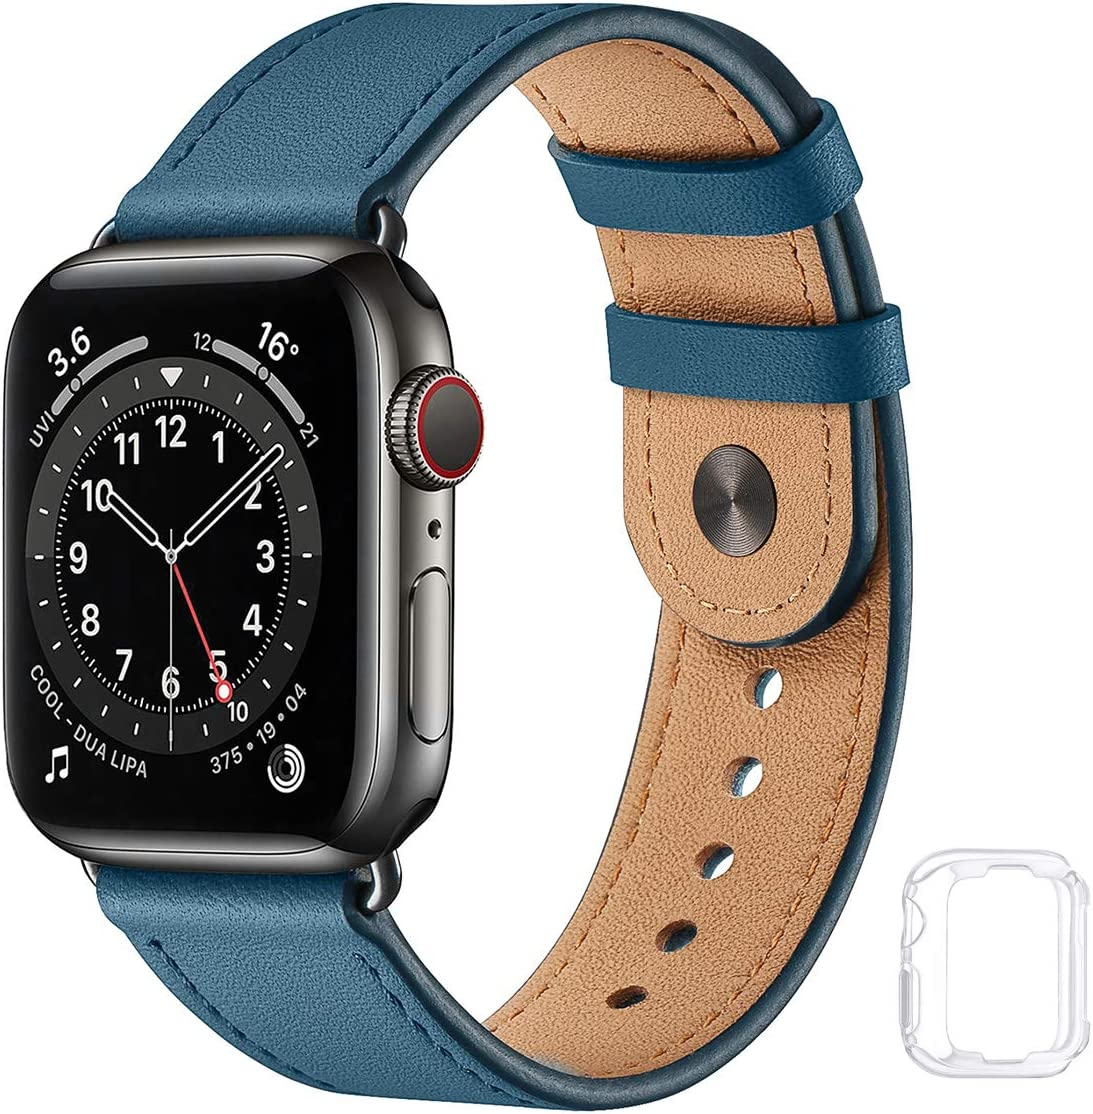 Soft Leather Bands Compatible with Apple Watch Band 38mm 40mm 42mm 44mm, Special Watch Band Replacement Strap for Women Men for iWatch SE Series 6 5 4 3 2 1 (Olympic Blue with Black, 38MM/40MM)